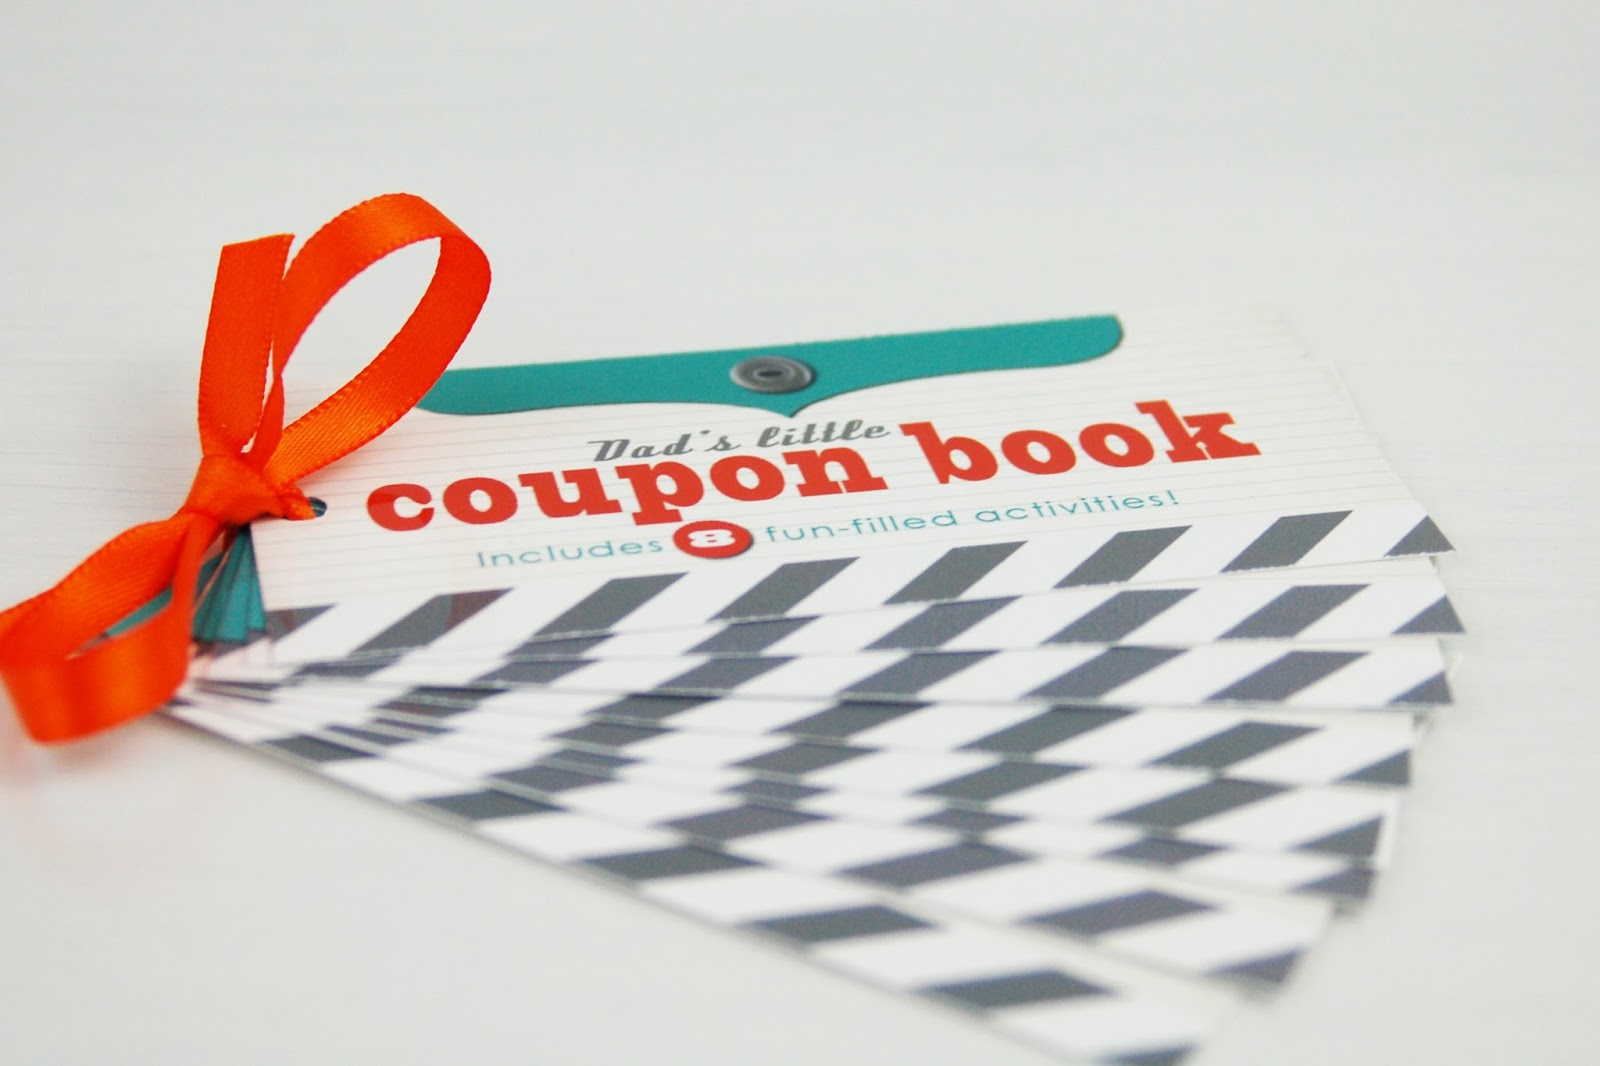 fathers day coupon book printable by jen gallacher from wwwjengallachercom includes